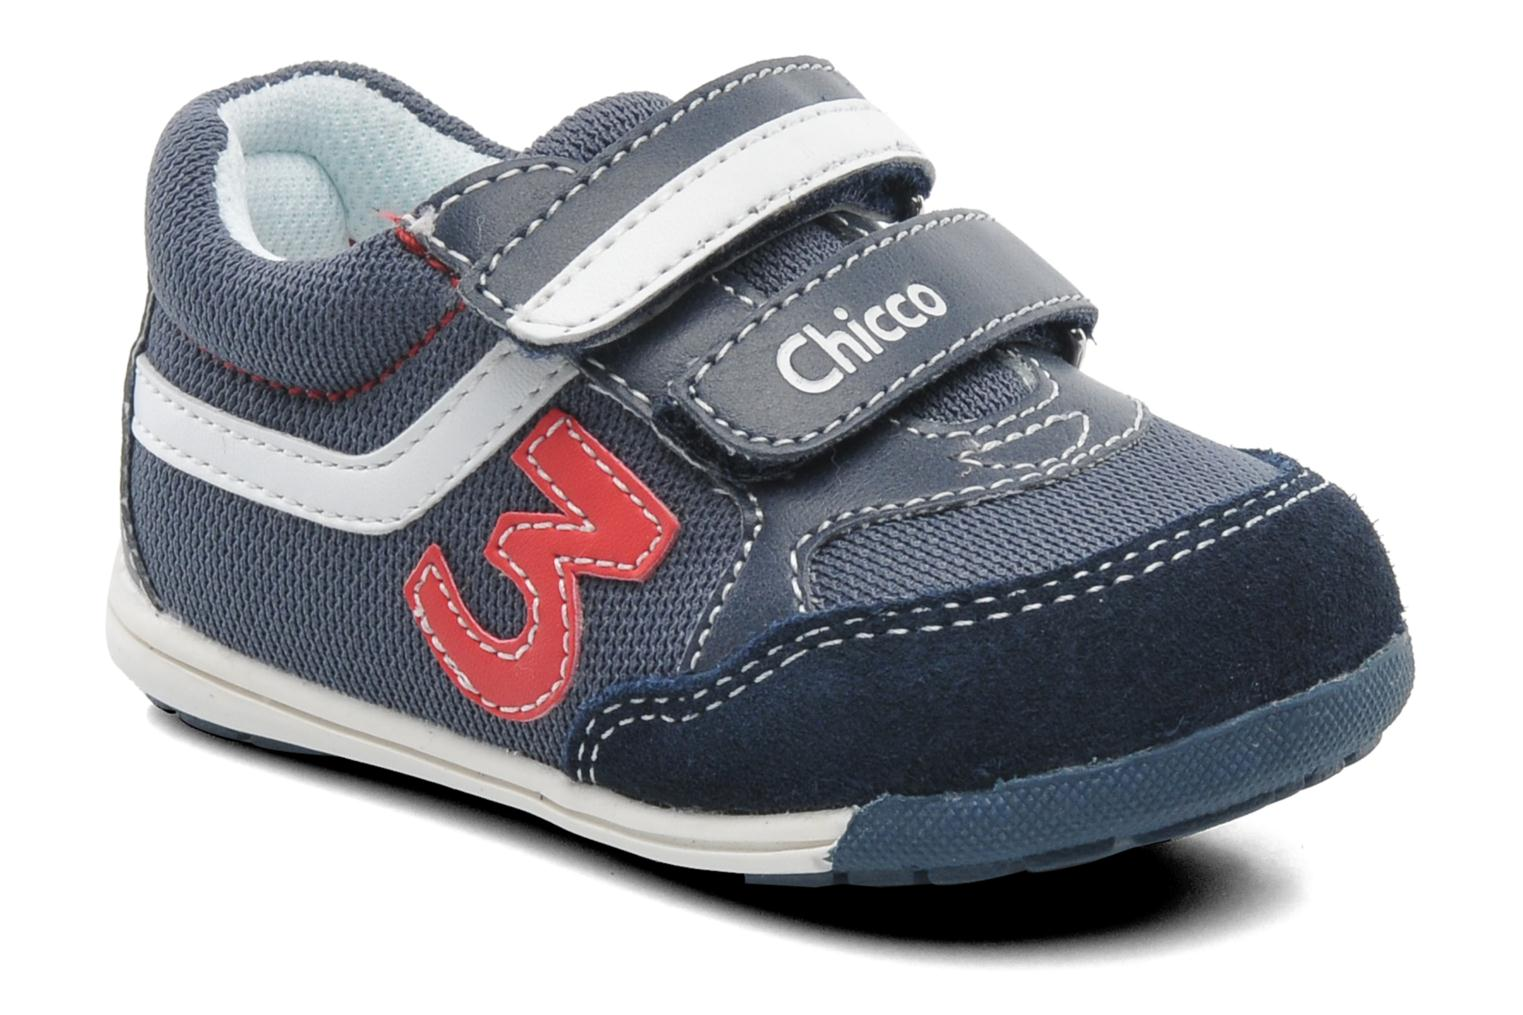 Sneakers galileo by Chicco